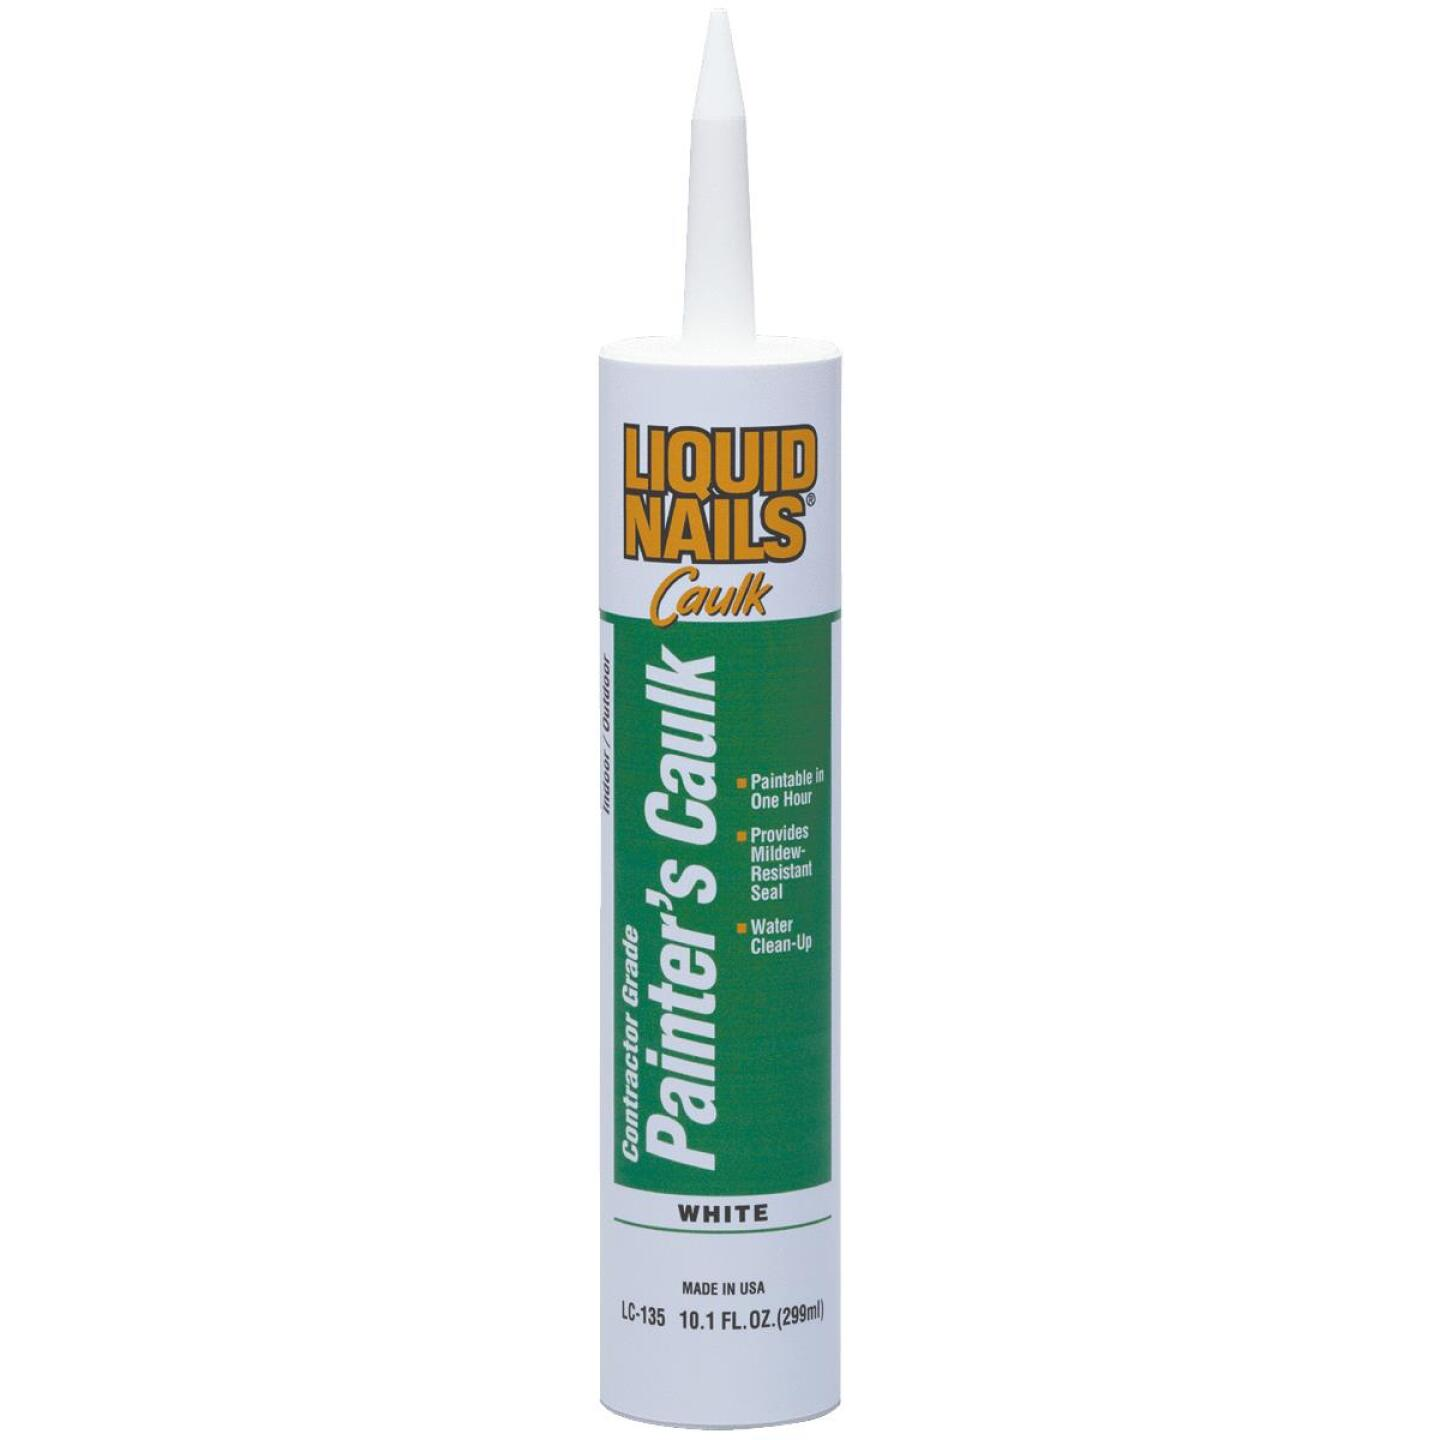 LIQUID NAILS 10.1 Oz, White Contractor Grade Painter's Acrylic Latex Caulk Image 1